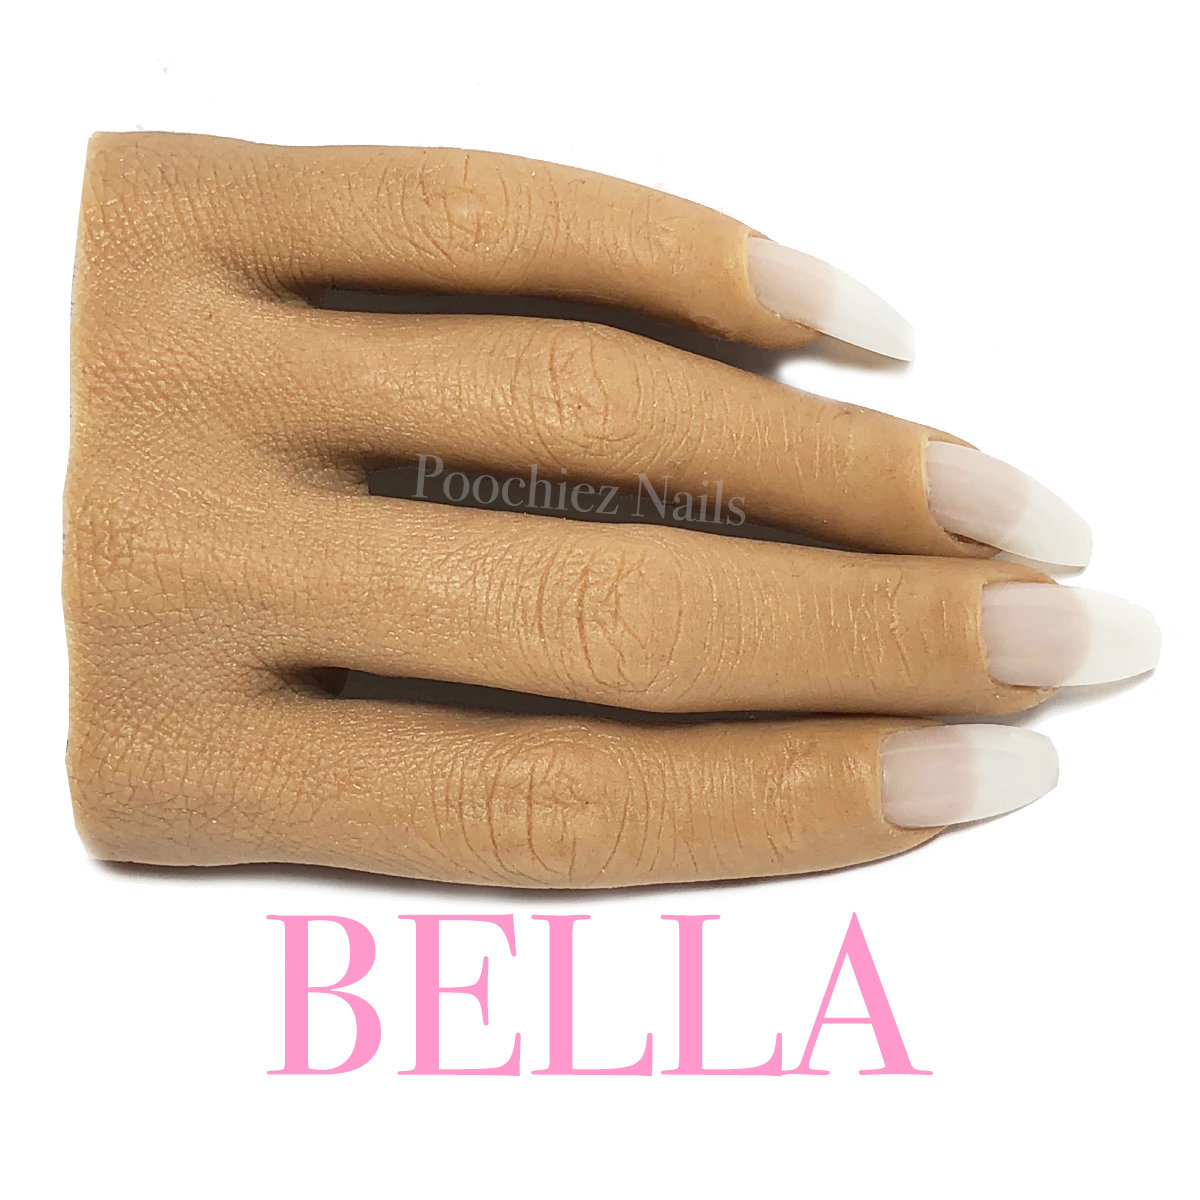 BELLA HALF REALISTIC PRACTICE HAND ( PLEASE READ THE DIRECTIONS & WATCH THE VIDEOS BELOW) WILL TAKE 5-8 DAYS TO PROCESS.